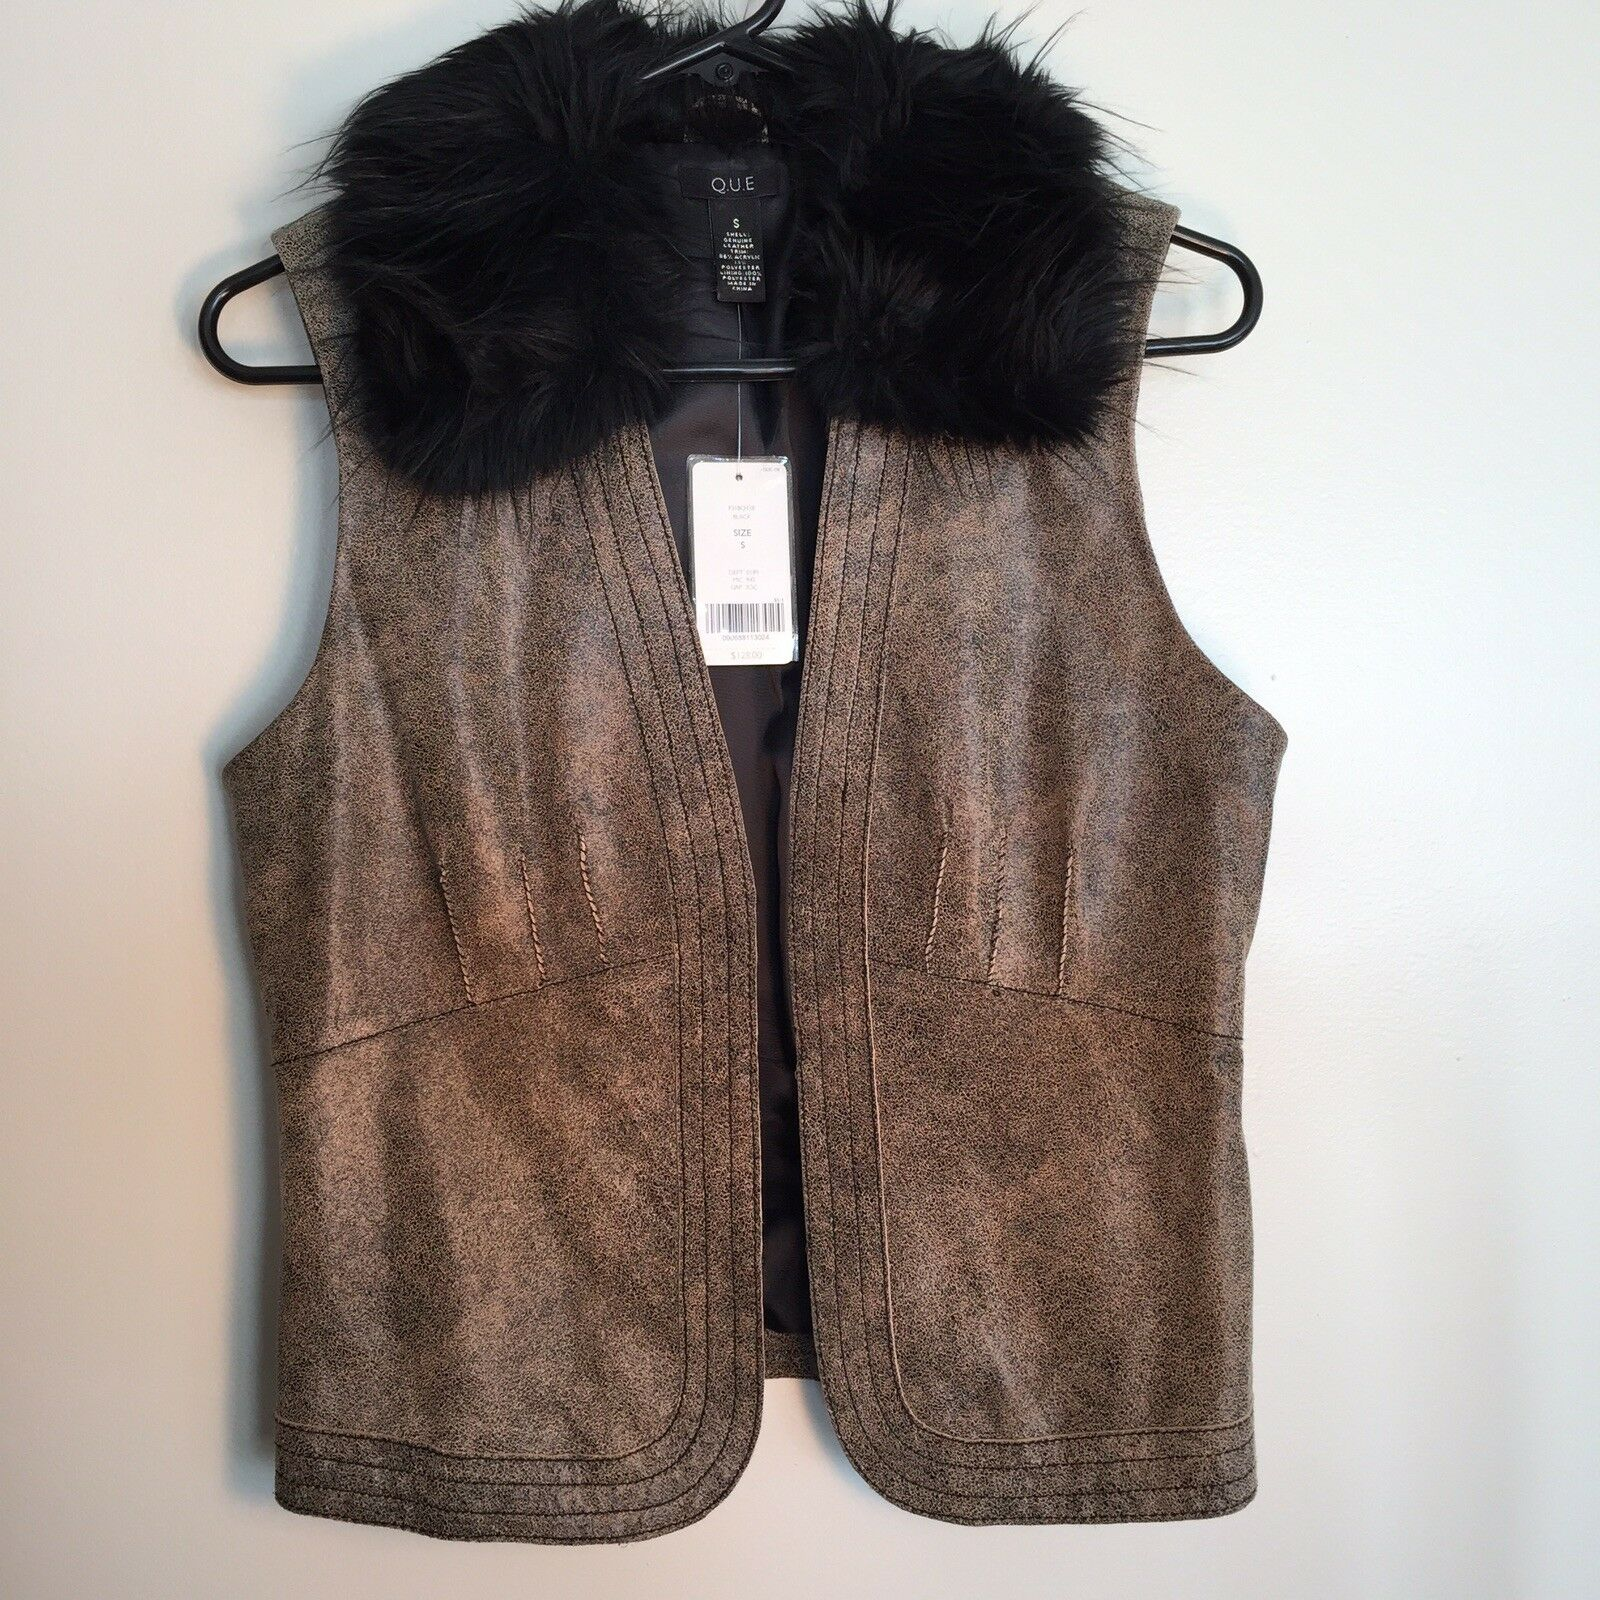 Que Genuine Genuine Genuine Leather And Faux Fur Women's Vest aa426b